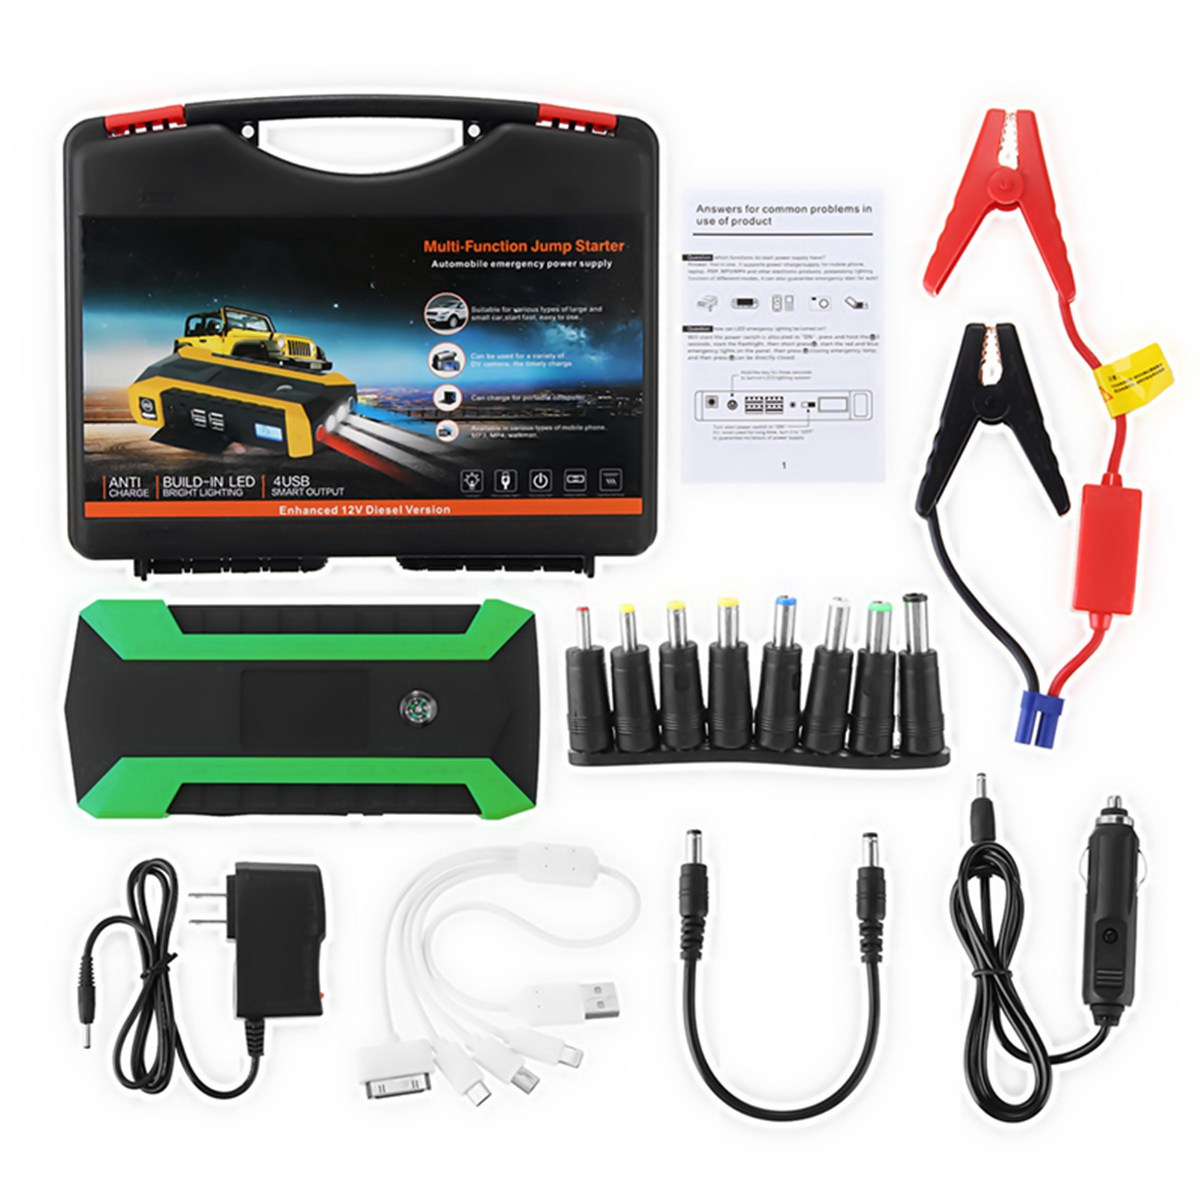 Car Jump Starter 89800mAh 12V 4USB Portable Car Battery Booster Charger Booster Power Bank Starting Device Car Starter 600A 89800mah car jump starter 12v 4usb 600a portable car battery booster charger booster power bank starting device car starter